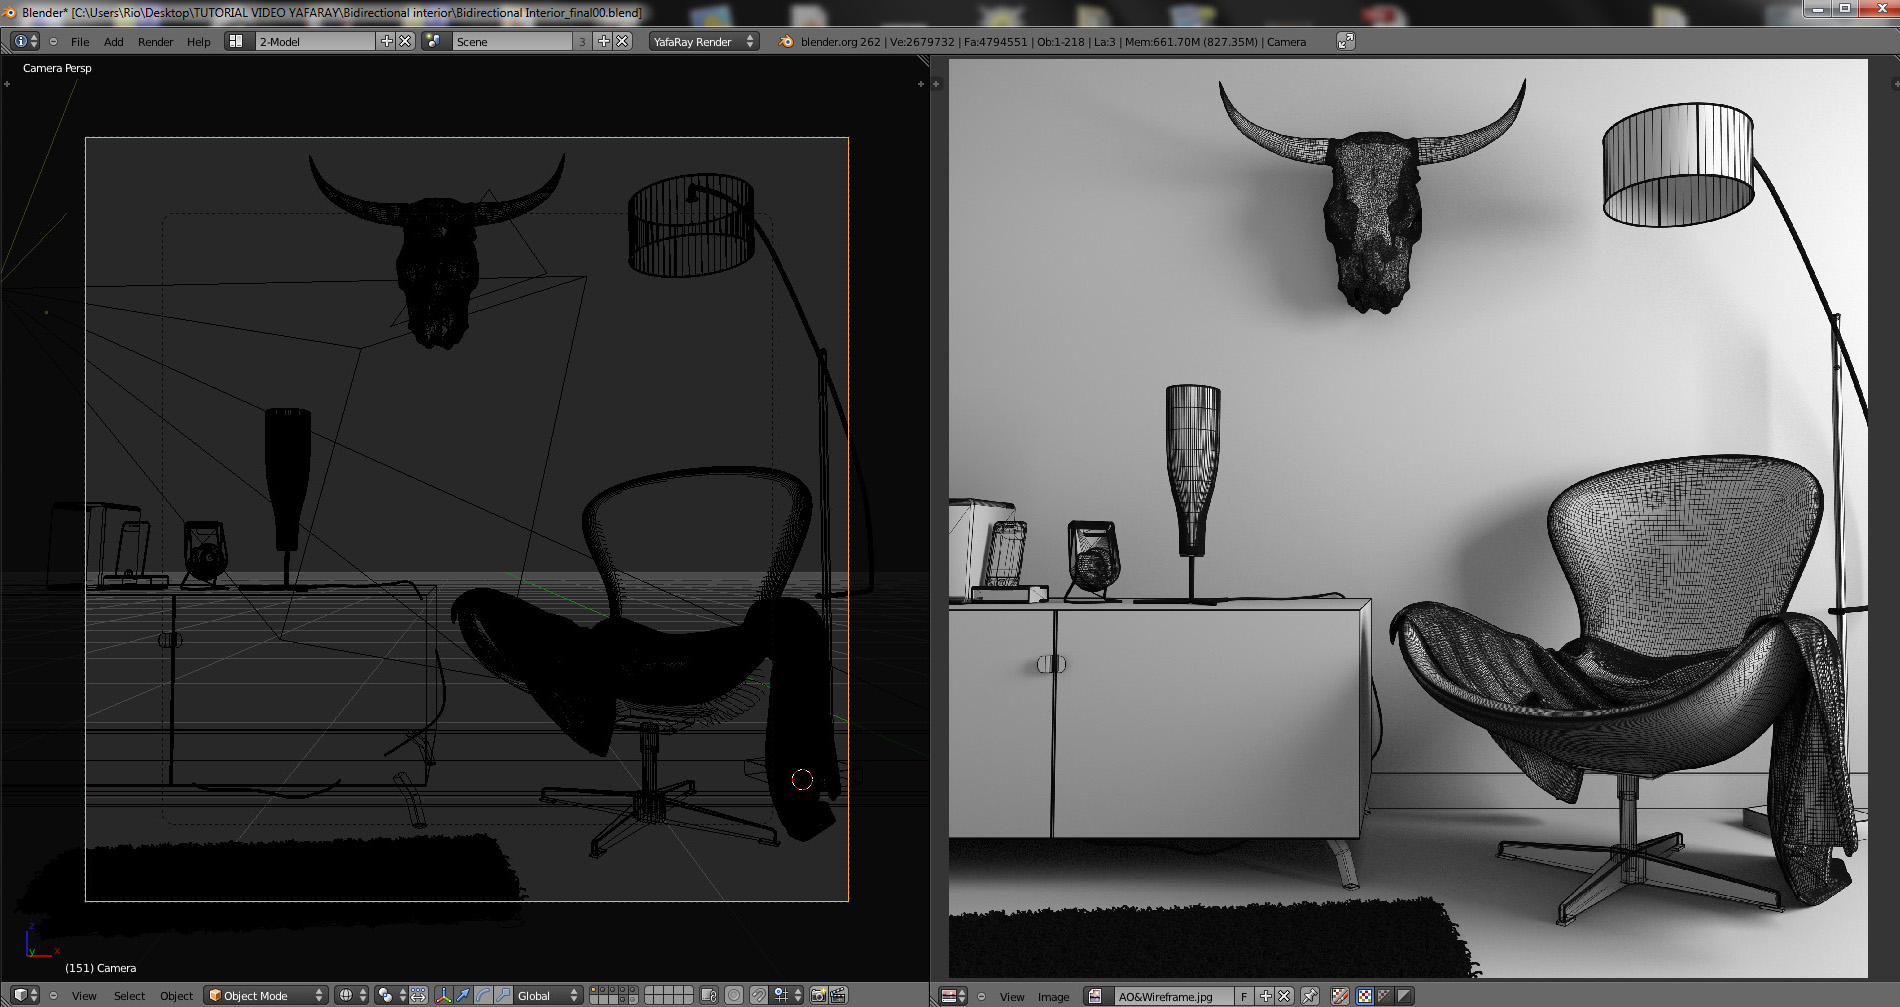 ScreenCapture-Blender-AO&Wireframe.jpg